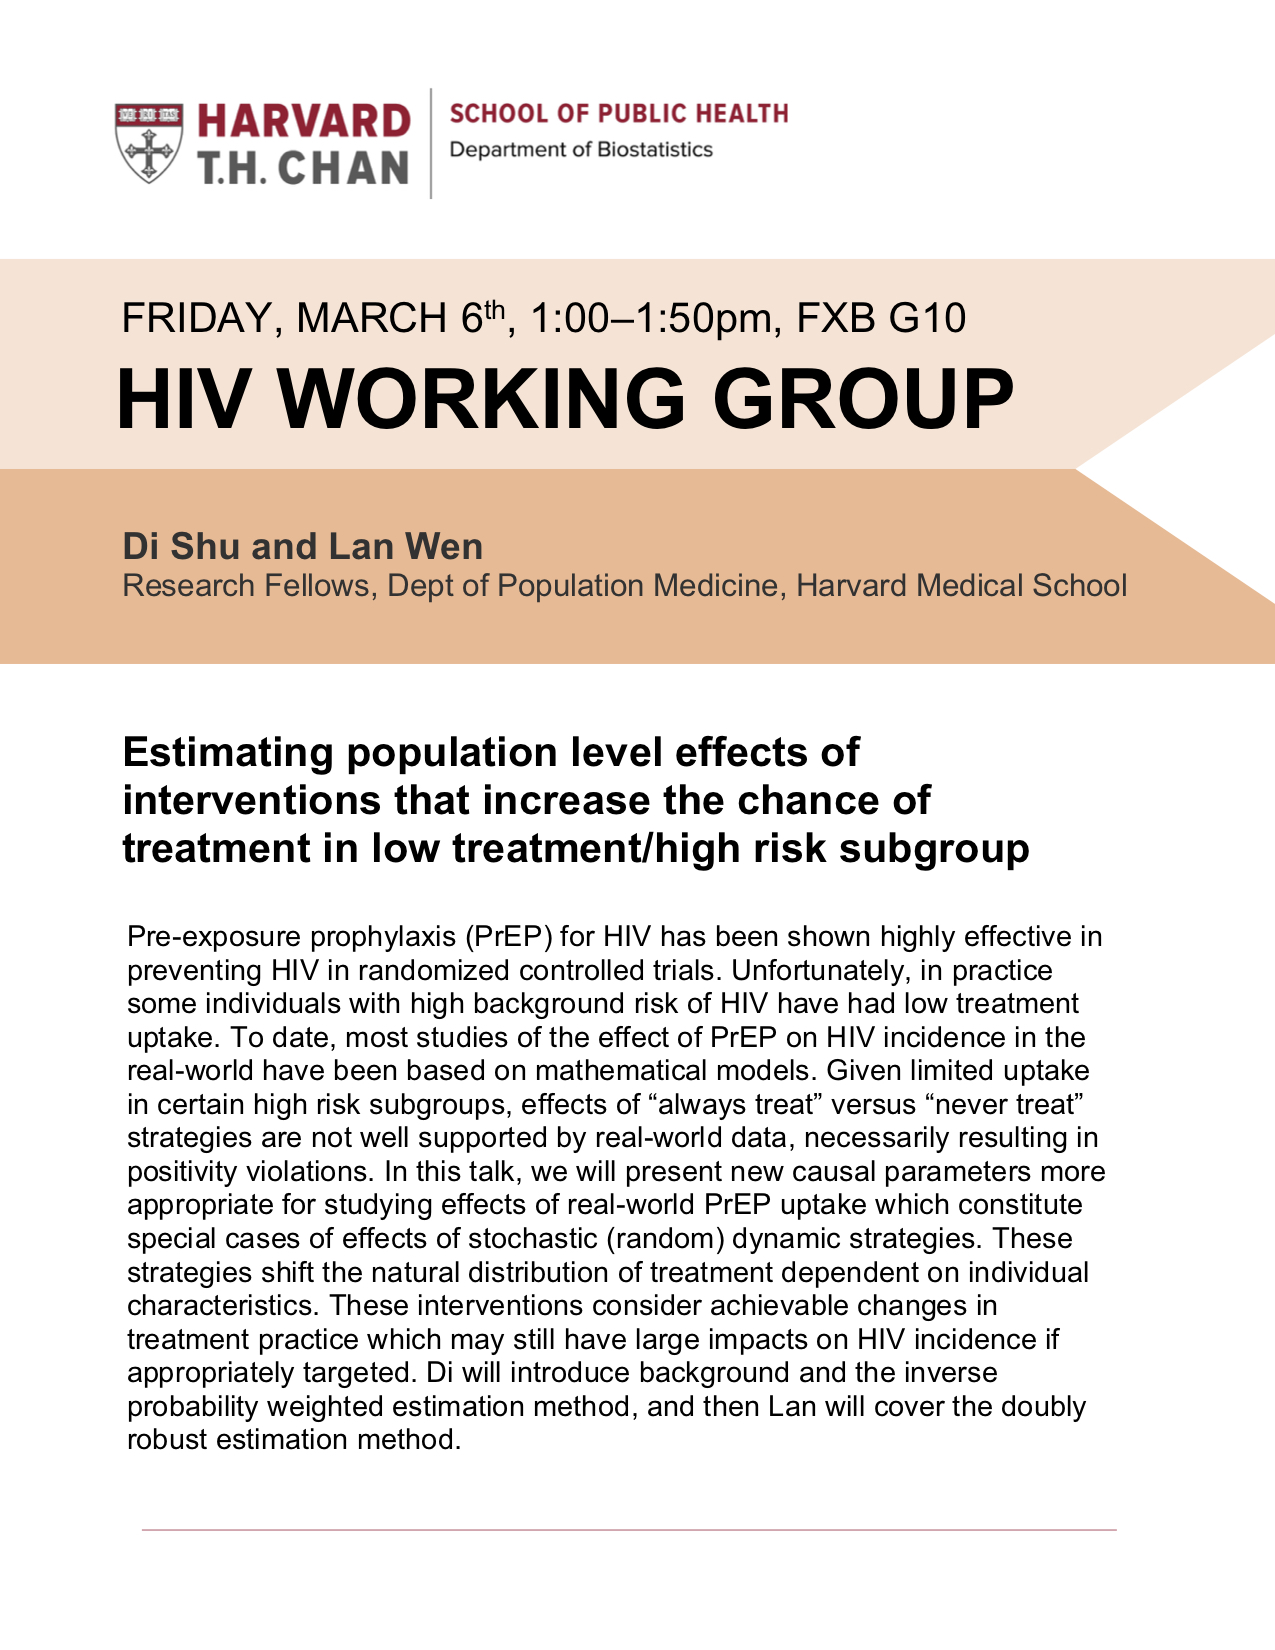 HIV Working group